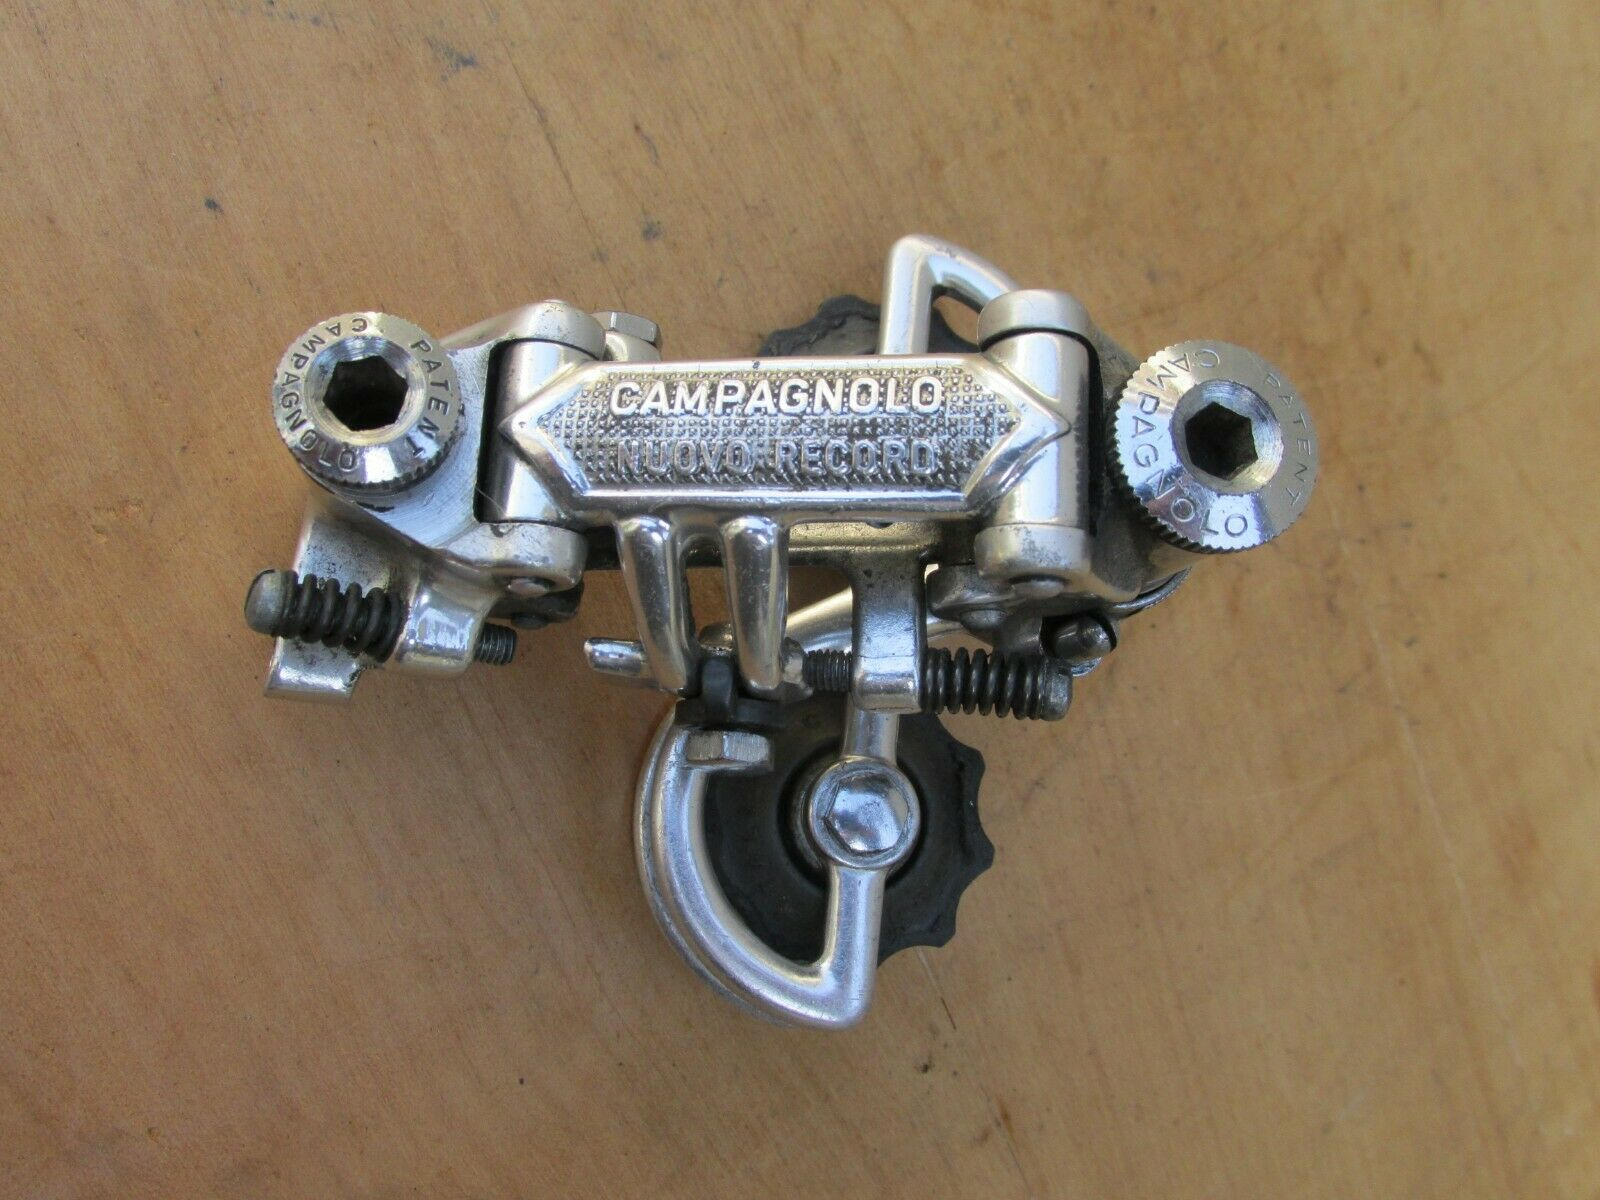 CAMPAGNOLO NUOVO RECORD VINTAGE DERAILLEUR ARRIERE VELO COURSE BICYCLE REAR